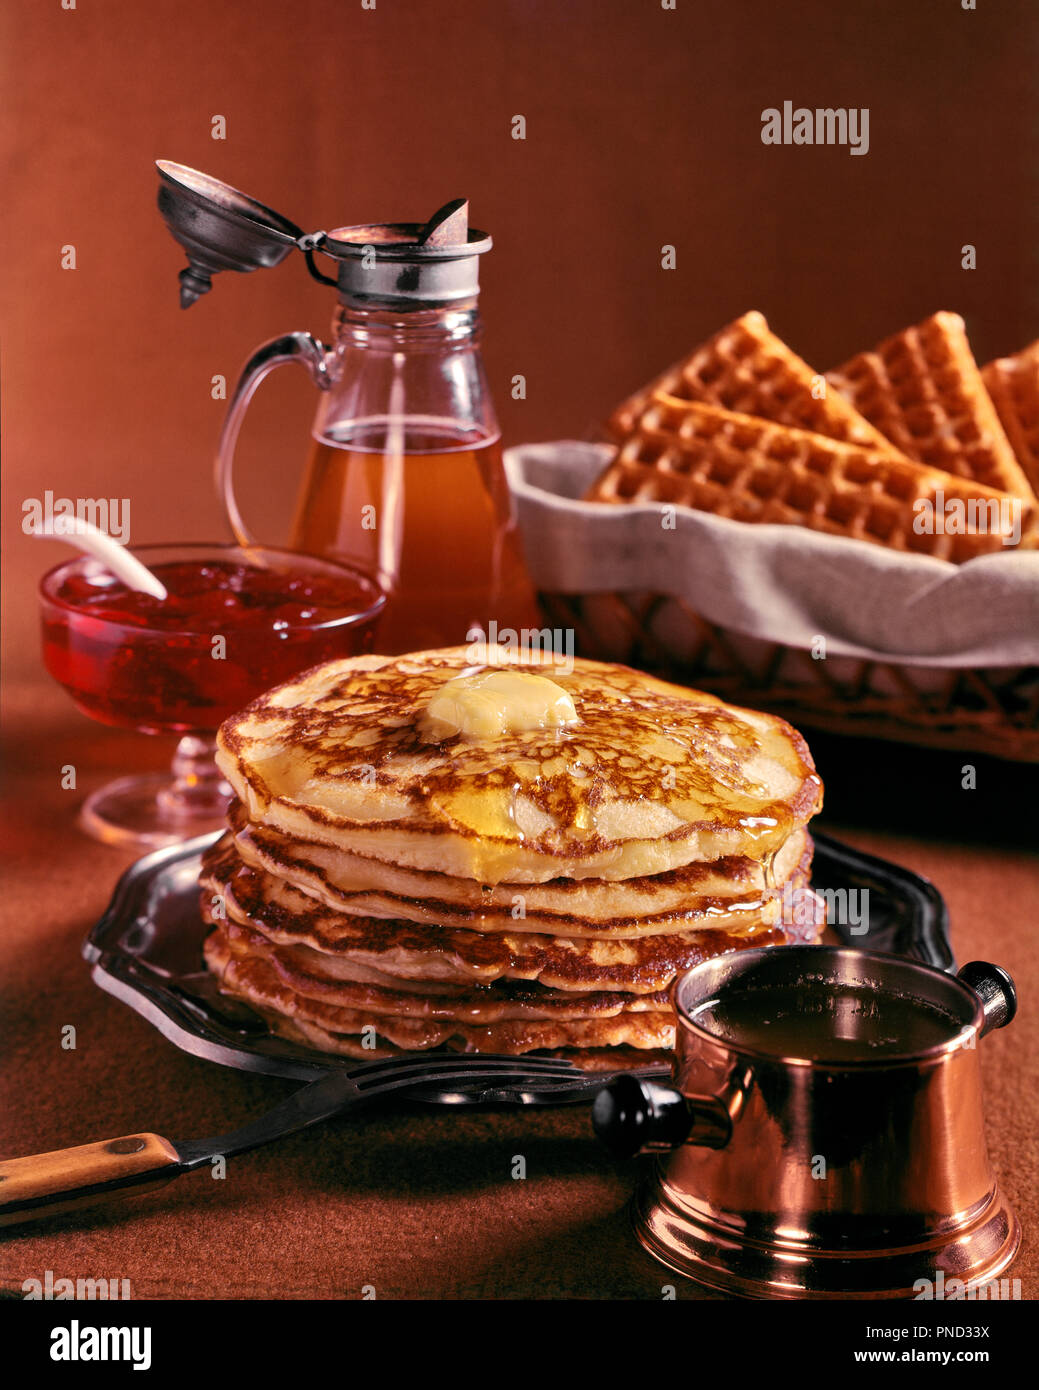 1950s STACK OF PANCAKES MELTING BUTTER PITCHER MAPLE SYRUP BASKET OF WAFFLES HONEY JAM PRESESRVES - kf21246 PHT001 HARS OLD FASHIONED - Stock Image